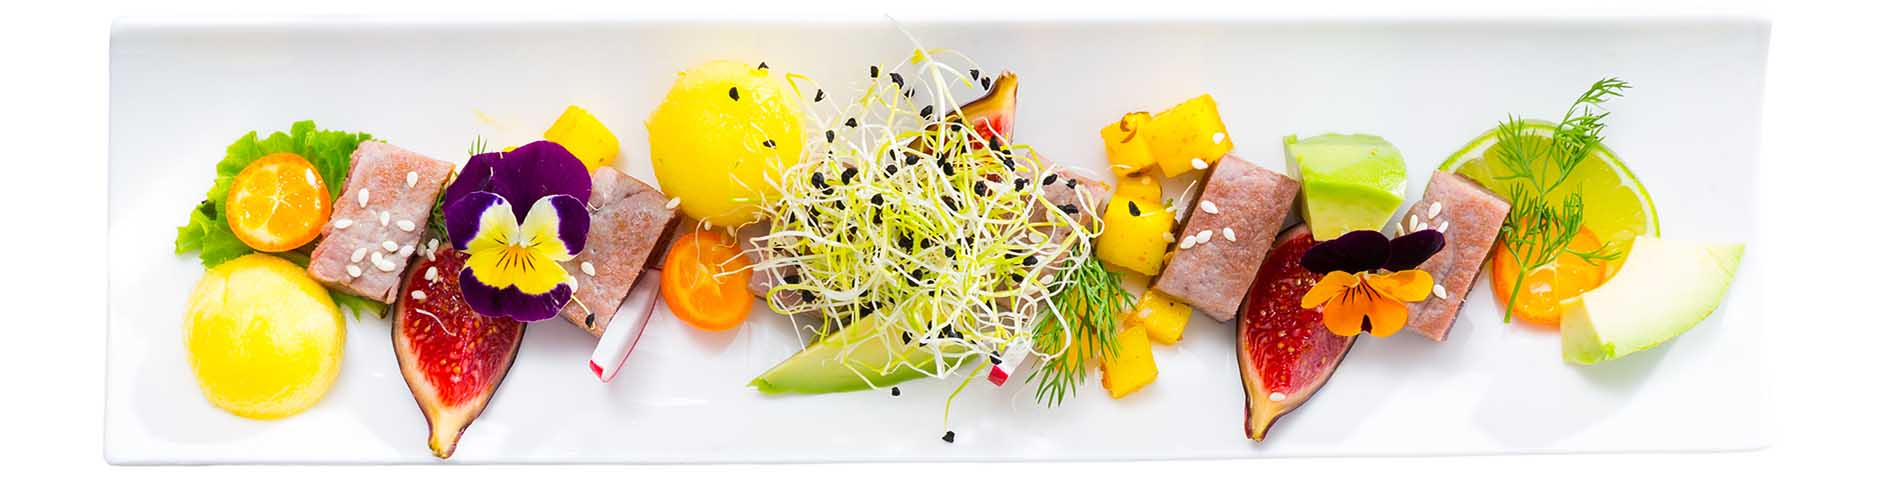 Close up of tasty fried tuna with mango and avocado, served with fig and flower. Isolated over white background